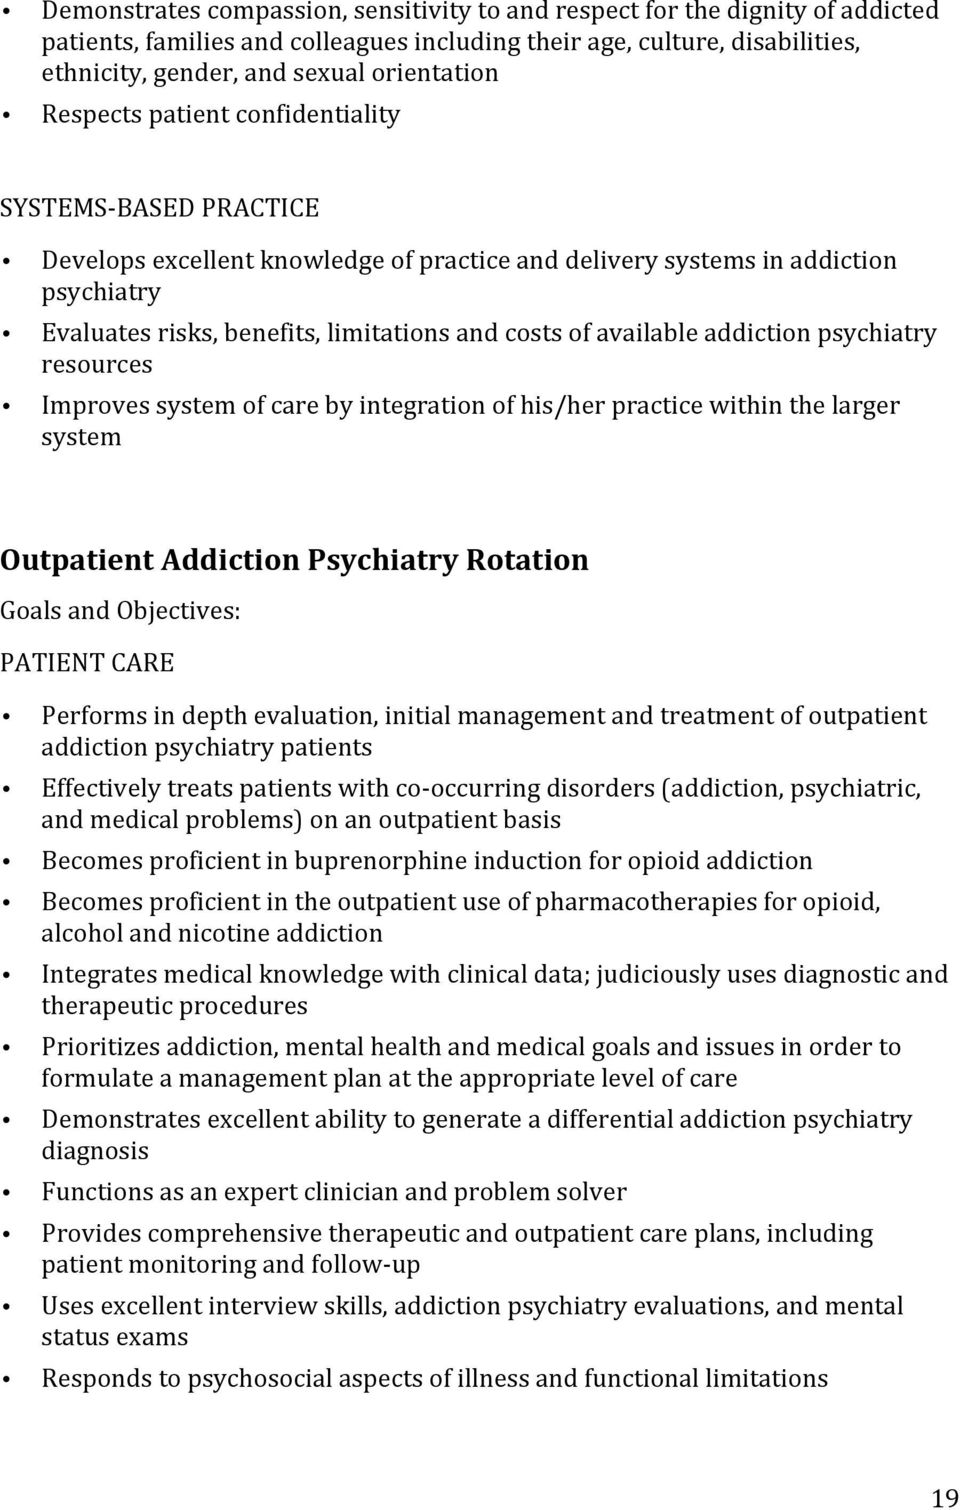 available addiction psychiatry resources Improves system of care by integration of his/her practice within the larger system Outpatient Addiction Psychiatry Rotation Goals and Objectives: PATIENT